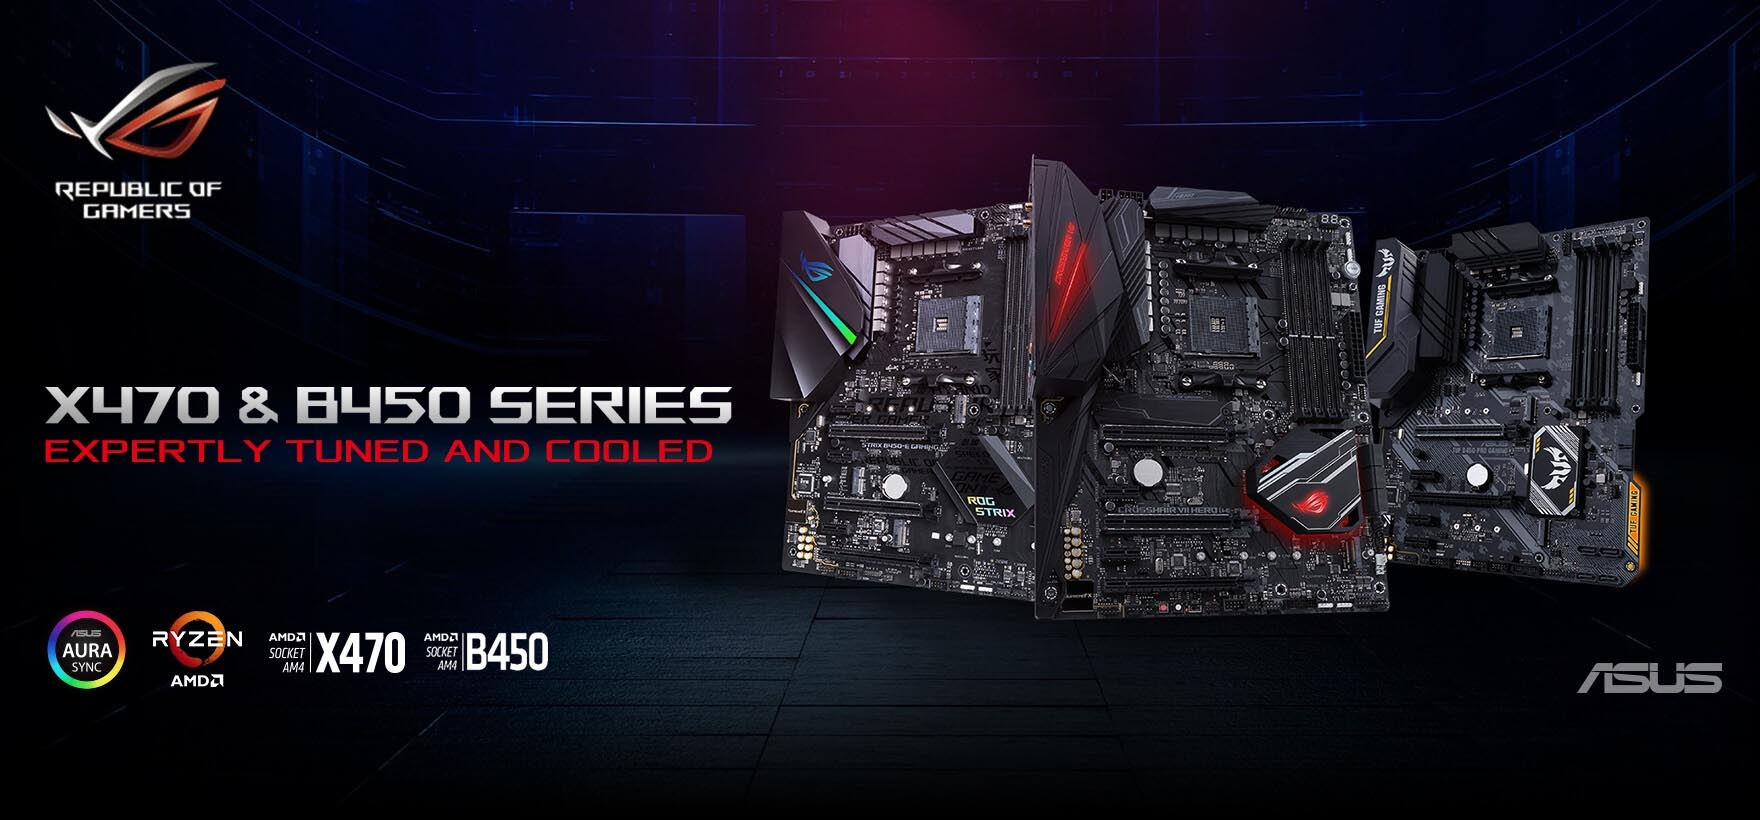 ASUS Releases BIOS Updates For AM4 Motherboards To Support Next-Gen